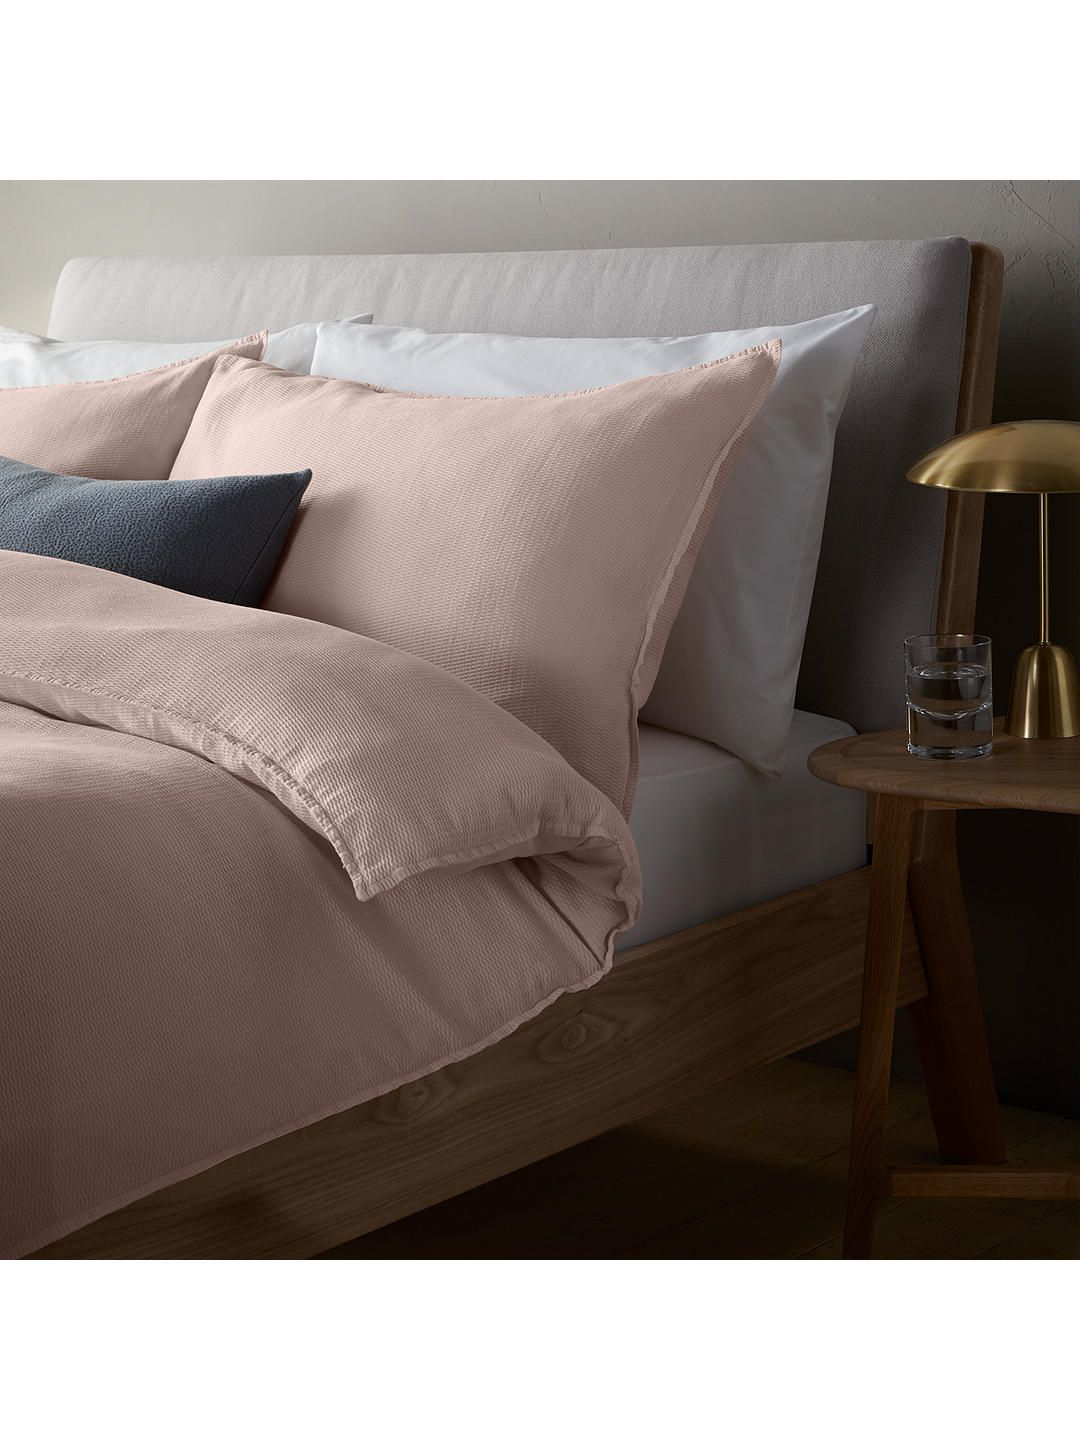 Buydesign Project By John Lewis No 144 Standard Pillowcase Pink